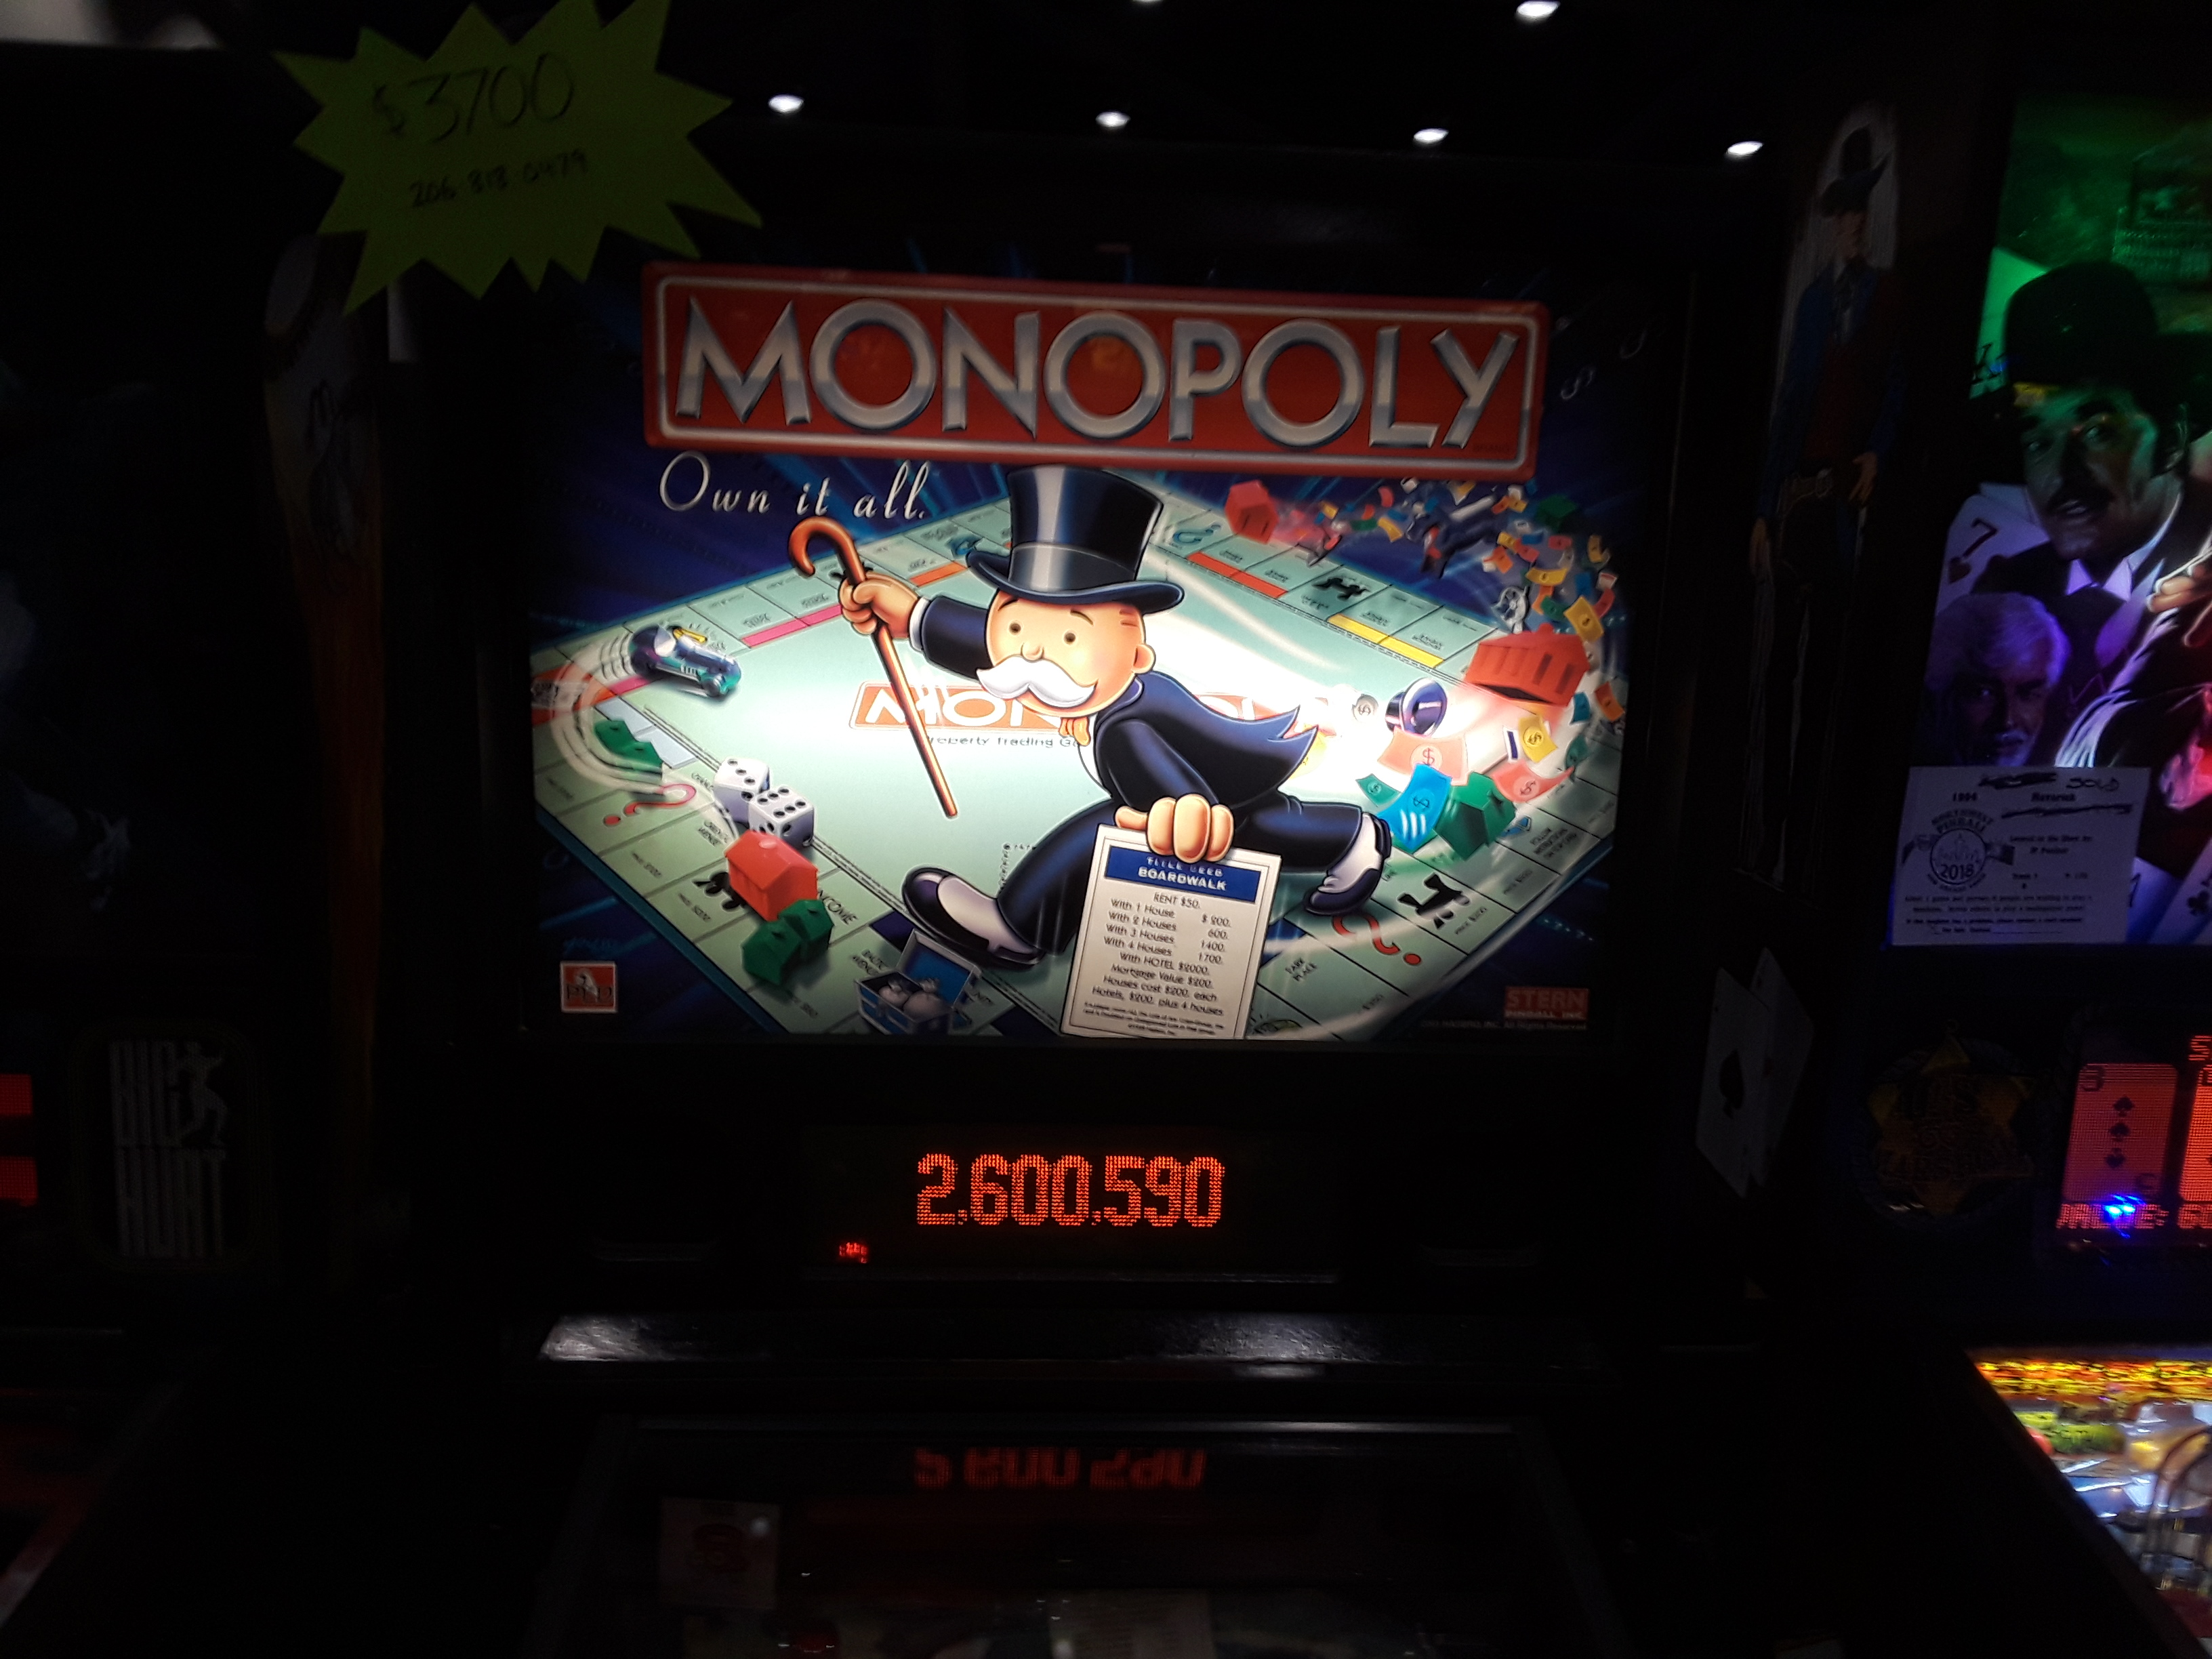 Monopoly 2,600,590 points